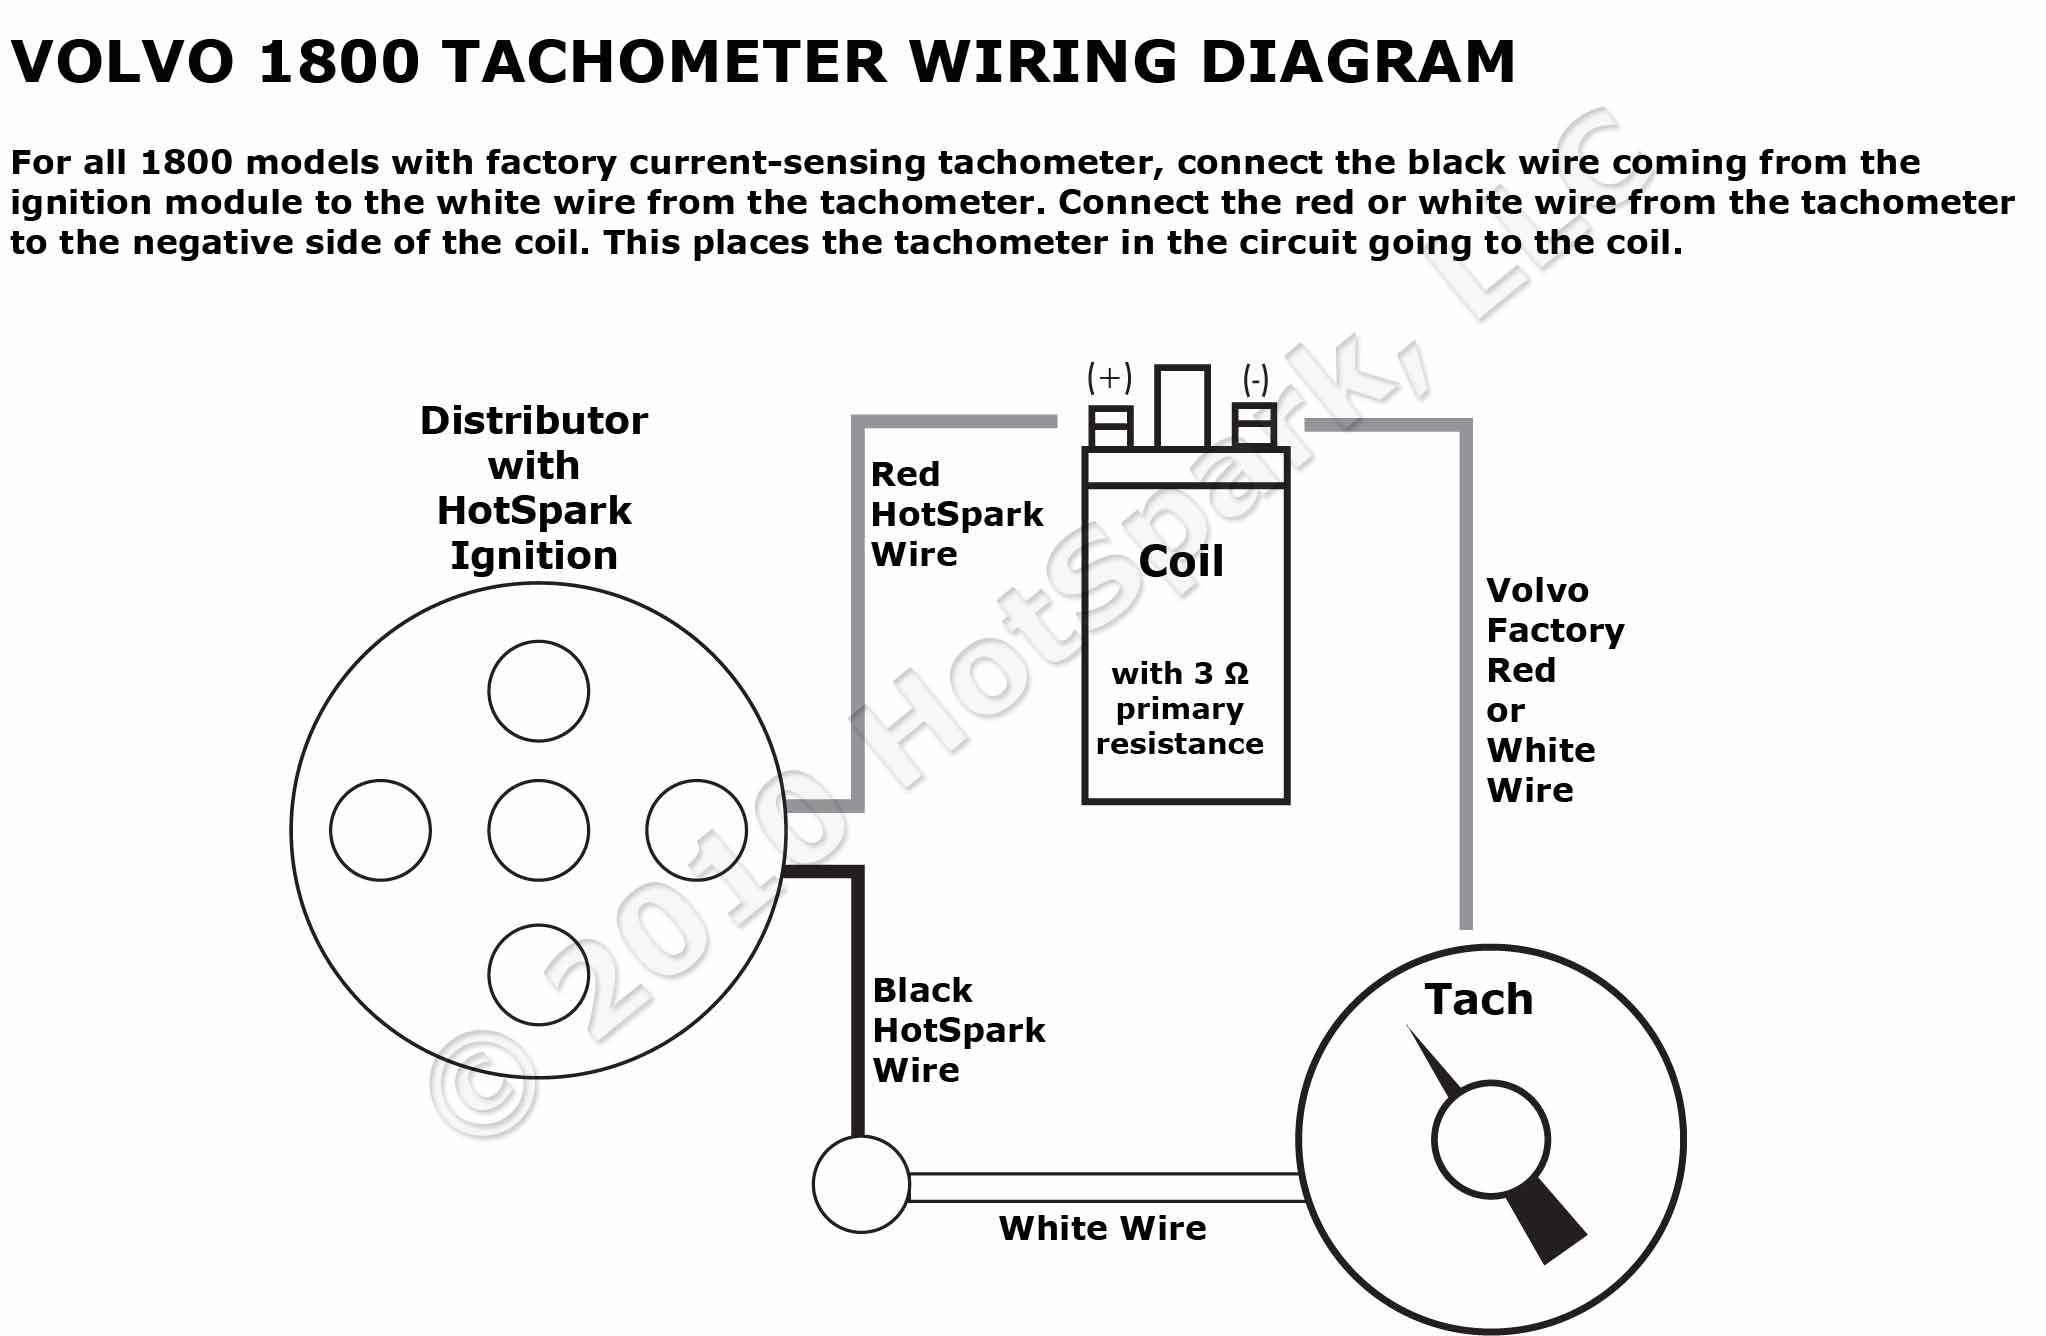 wiring diagram for tach online wiring diagramvolvo 1800 tachometer wiring diagram with hotspark ignitionwiring diagram for volvo 1800 tachometer and hot spark